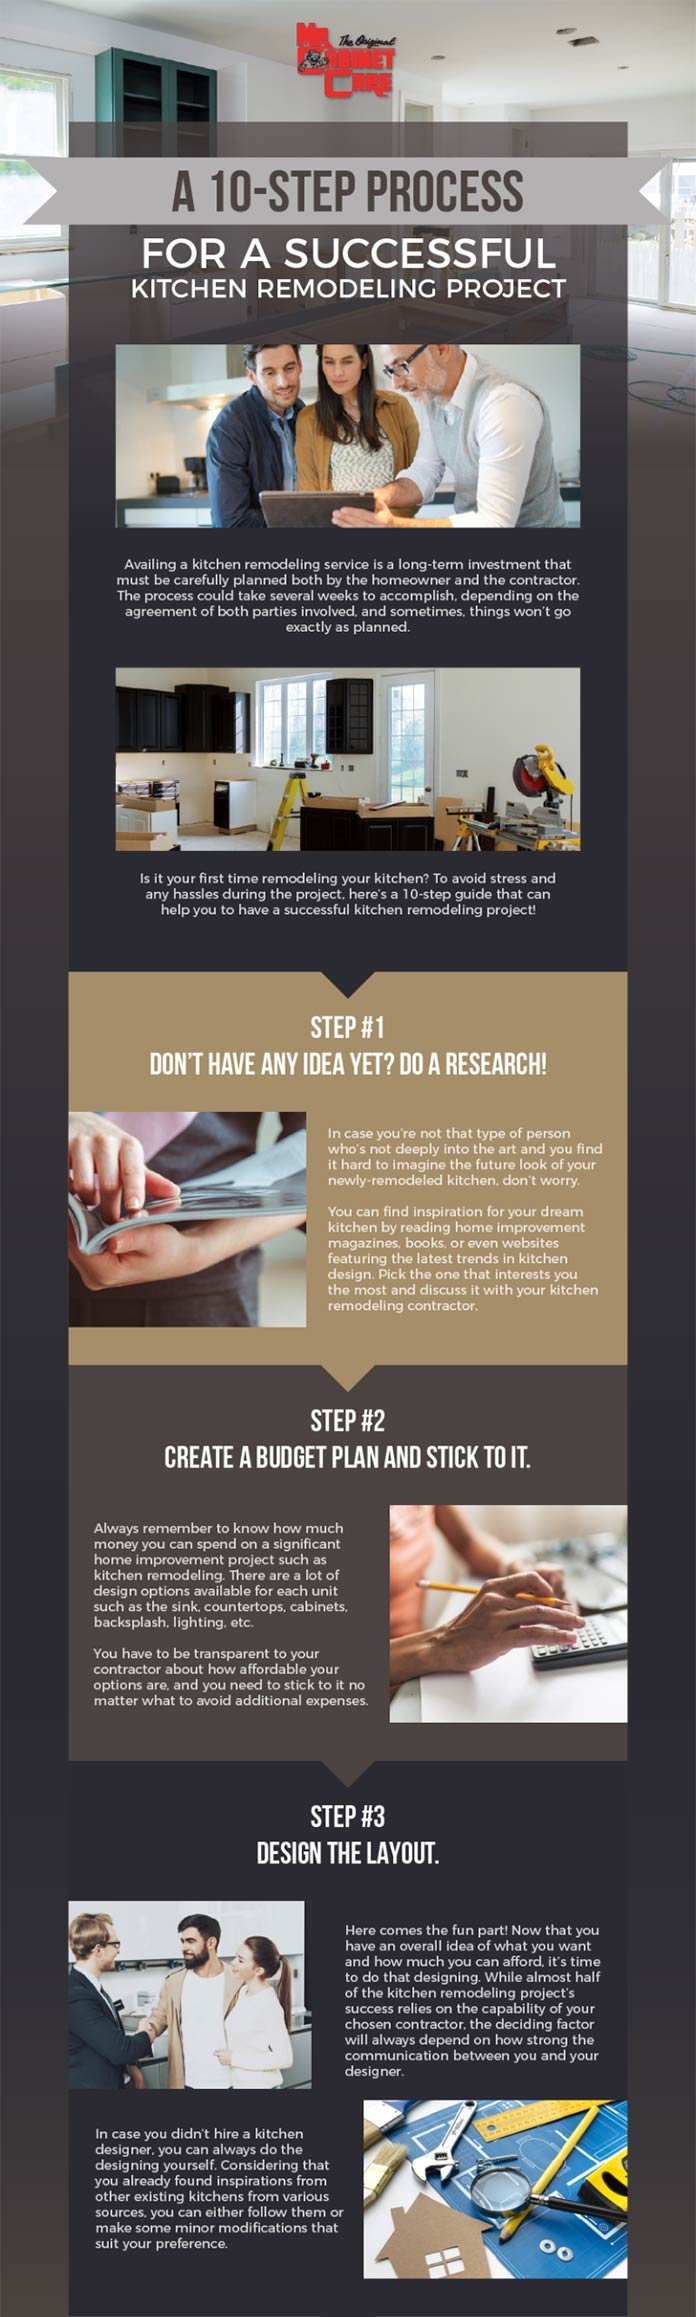 A 10-step process for a successful kitchen remodeling project - Infographic 1